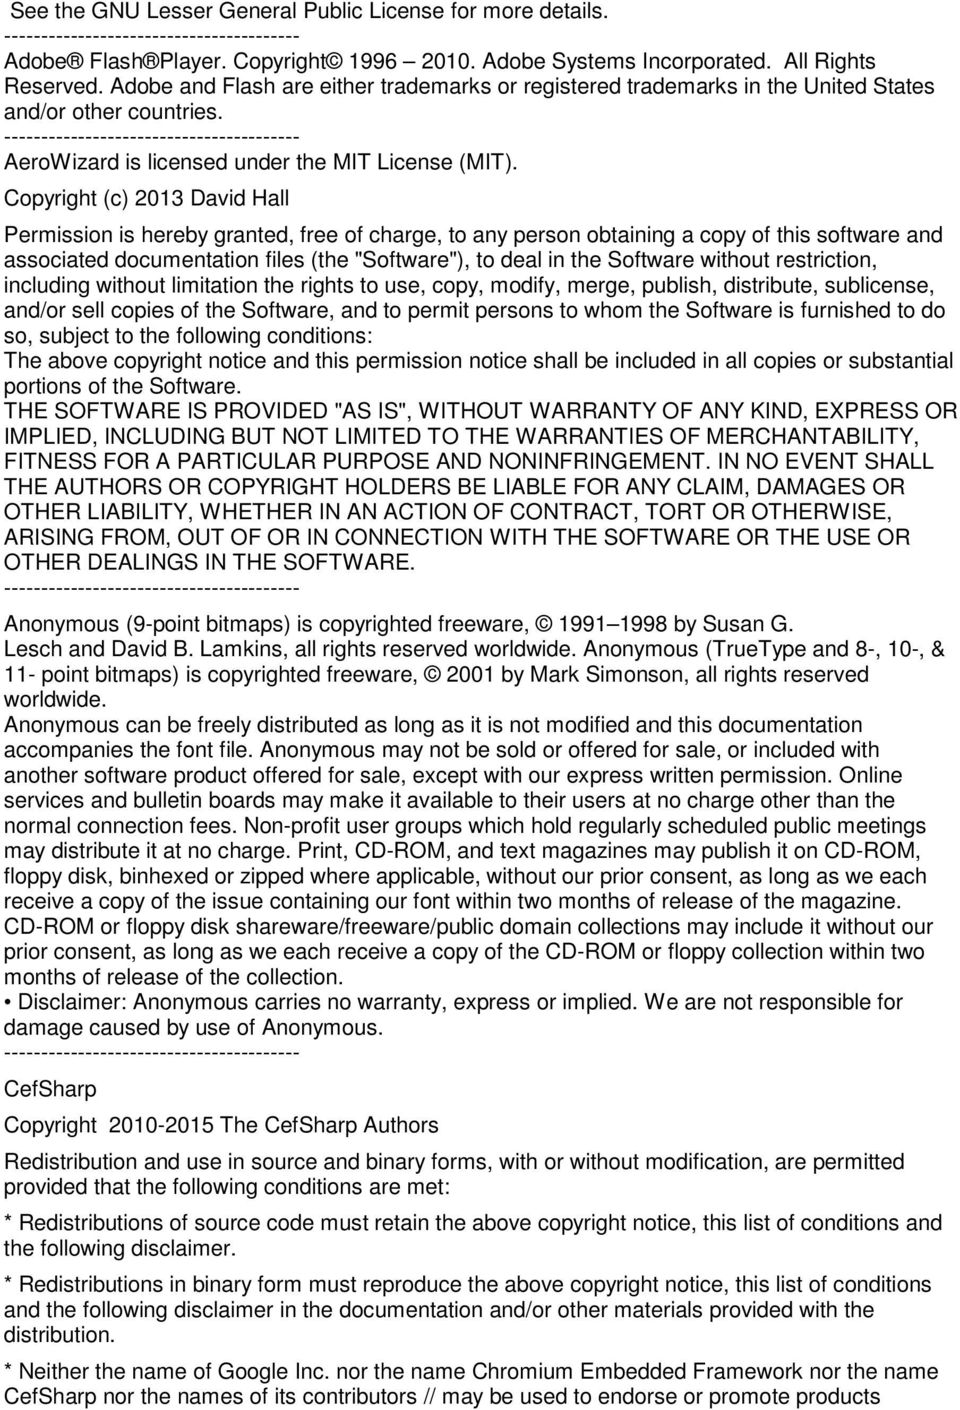 NVIVO 11 FOR WINDOWS END-USER LICENSE AGREEMENT FOR QSR SOFTWARE